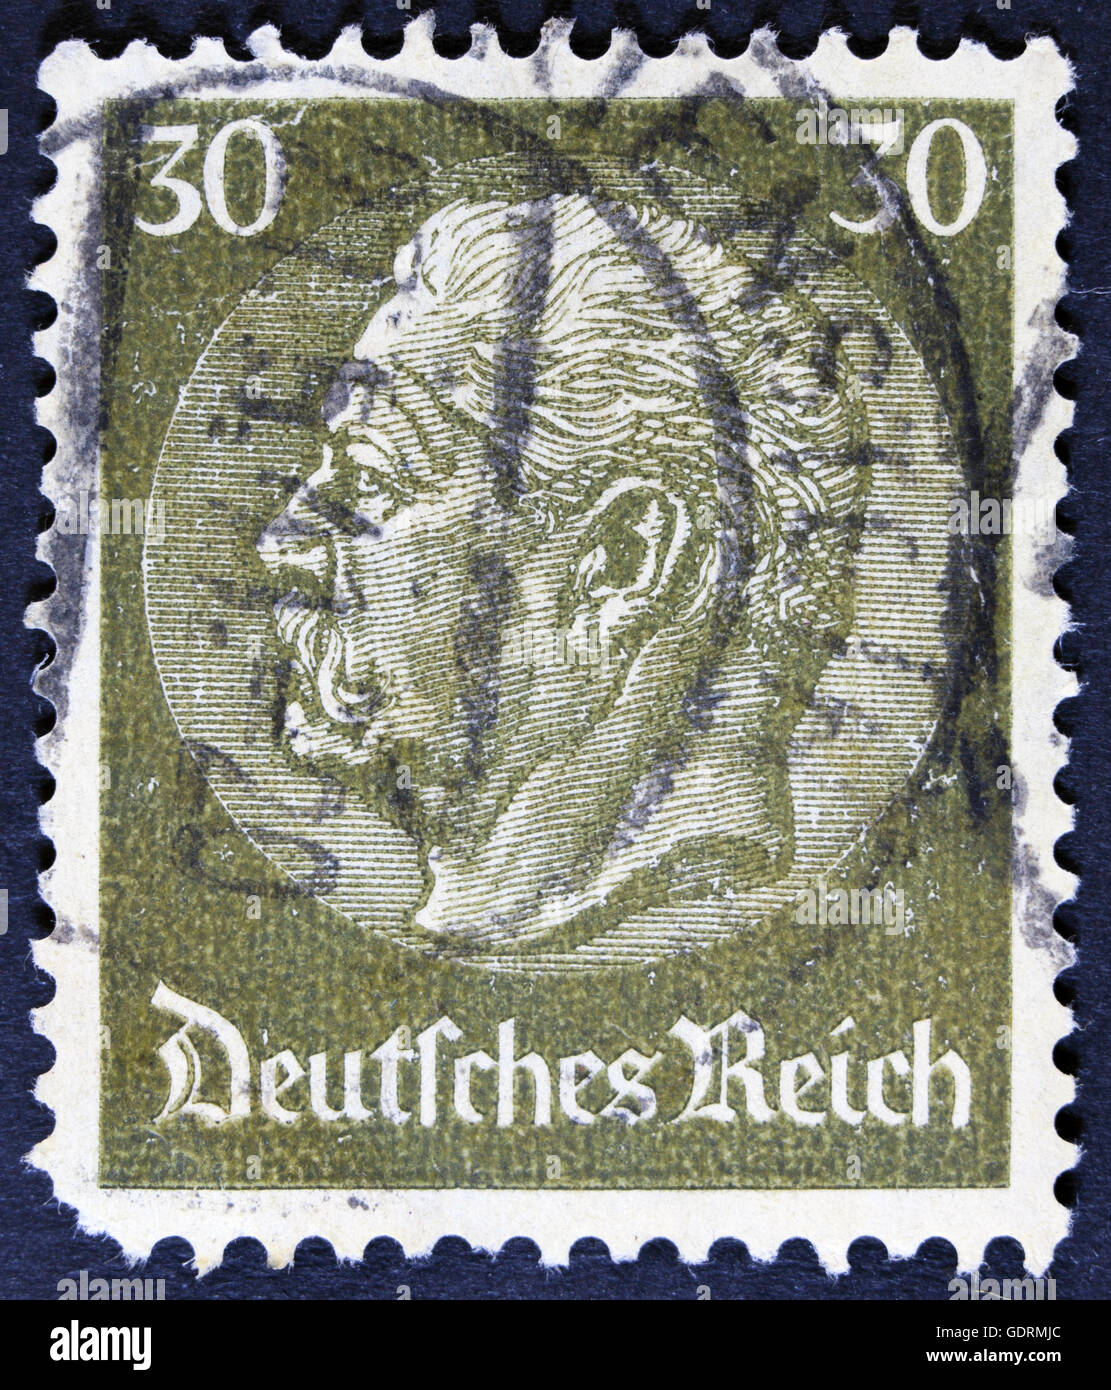 Old Used German Stamp From 30th December 1934 Year With Bismarck And Berlin Deutsche Reich Subtitle On White Separate